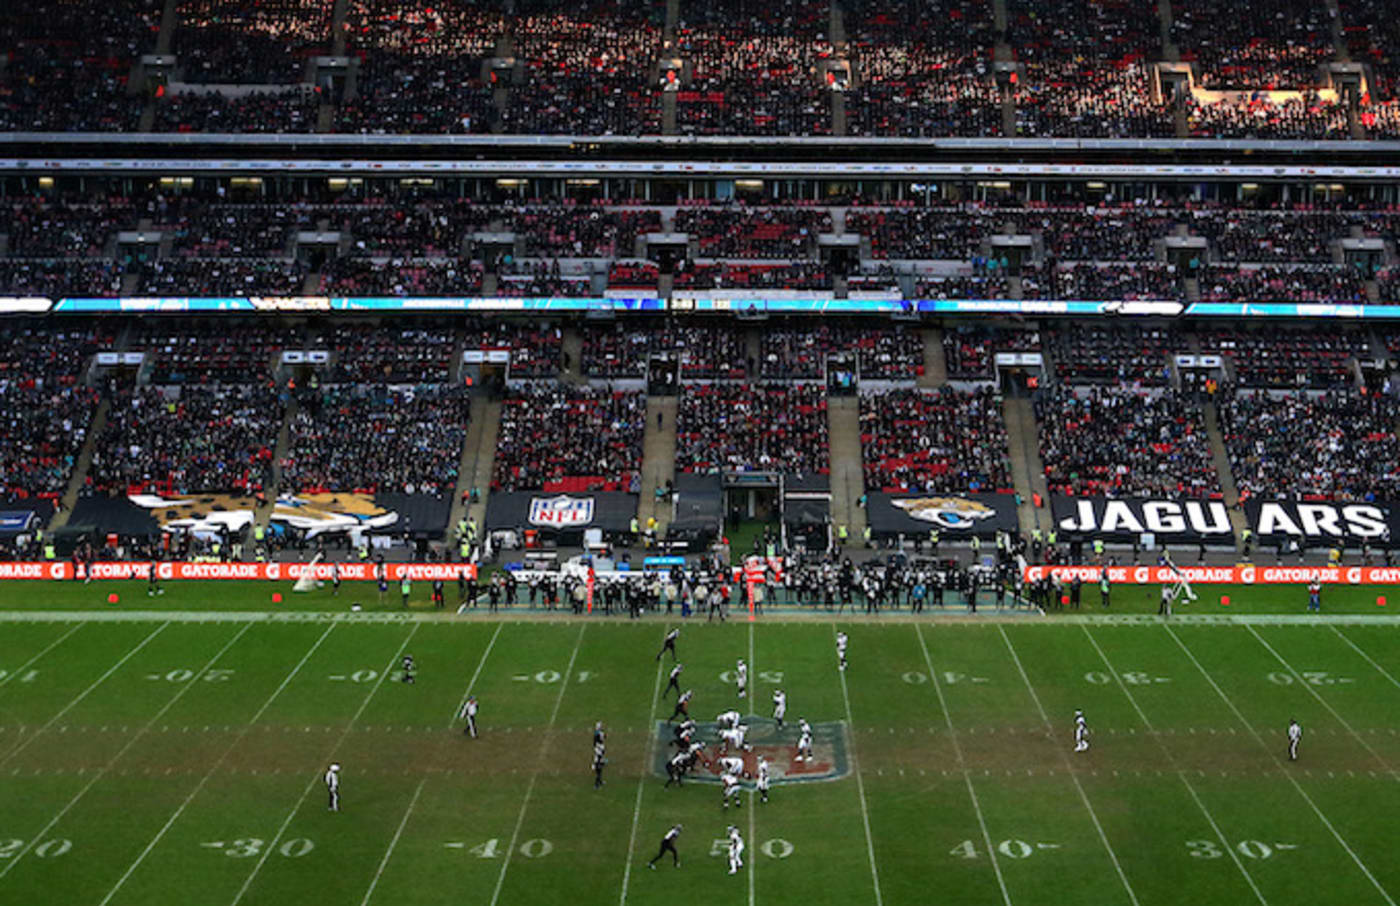 A general view inside the stadium during the NFL International Series.